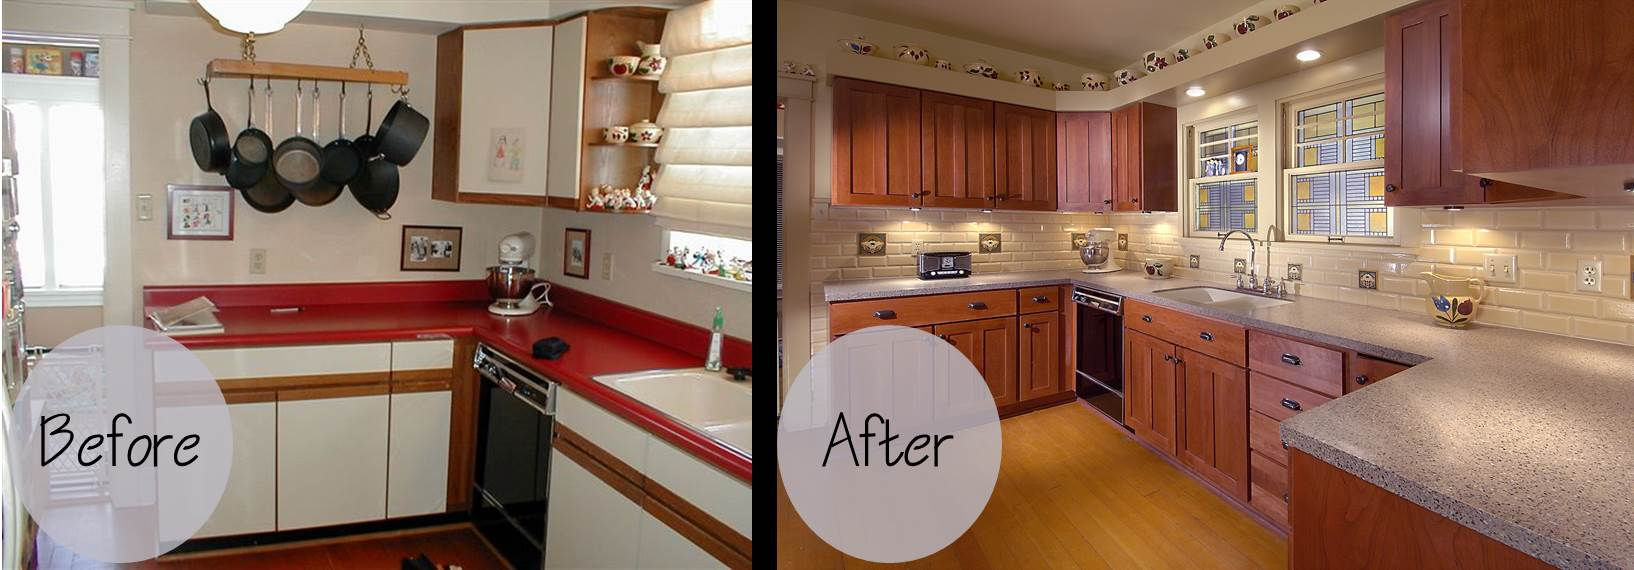 Cabinet refacing gallery wheeler brothers construction for Refinishing kitchen cabinets before and after